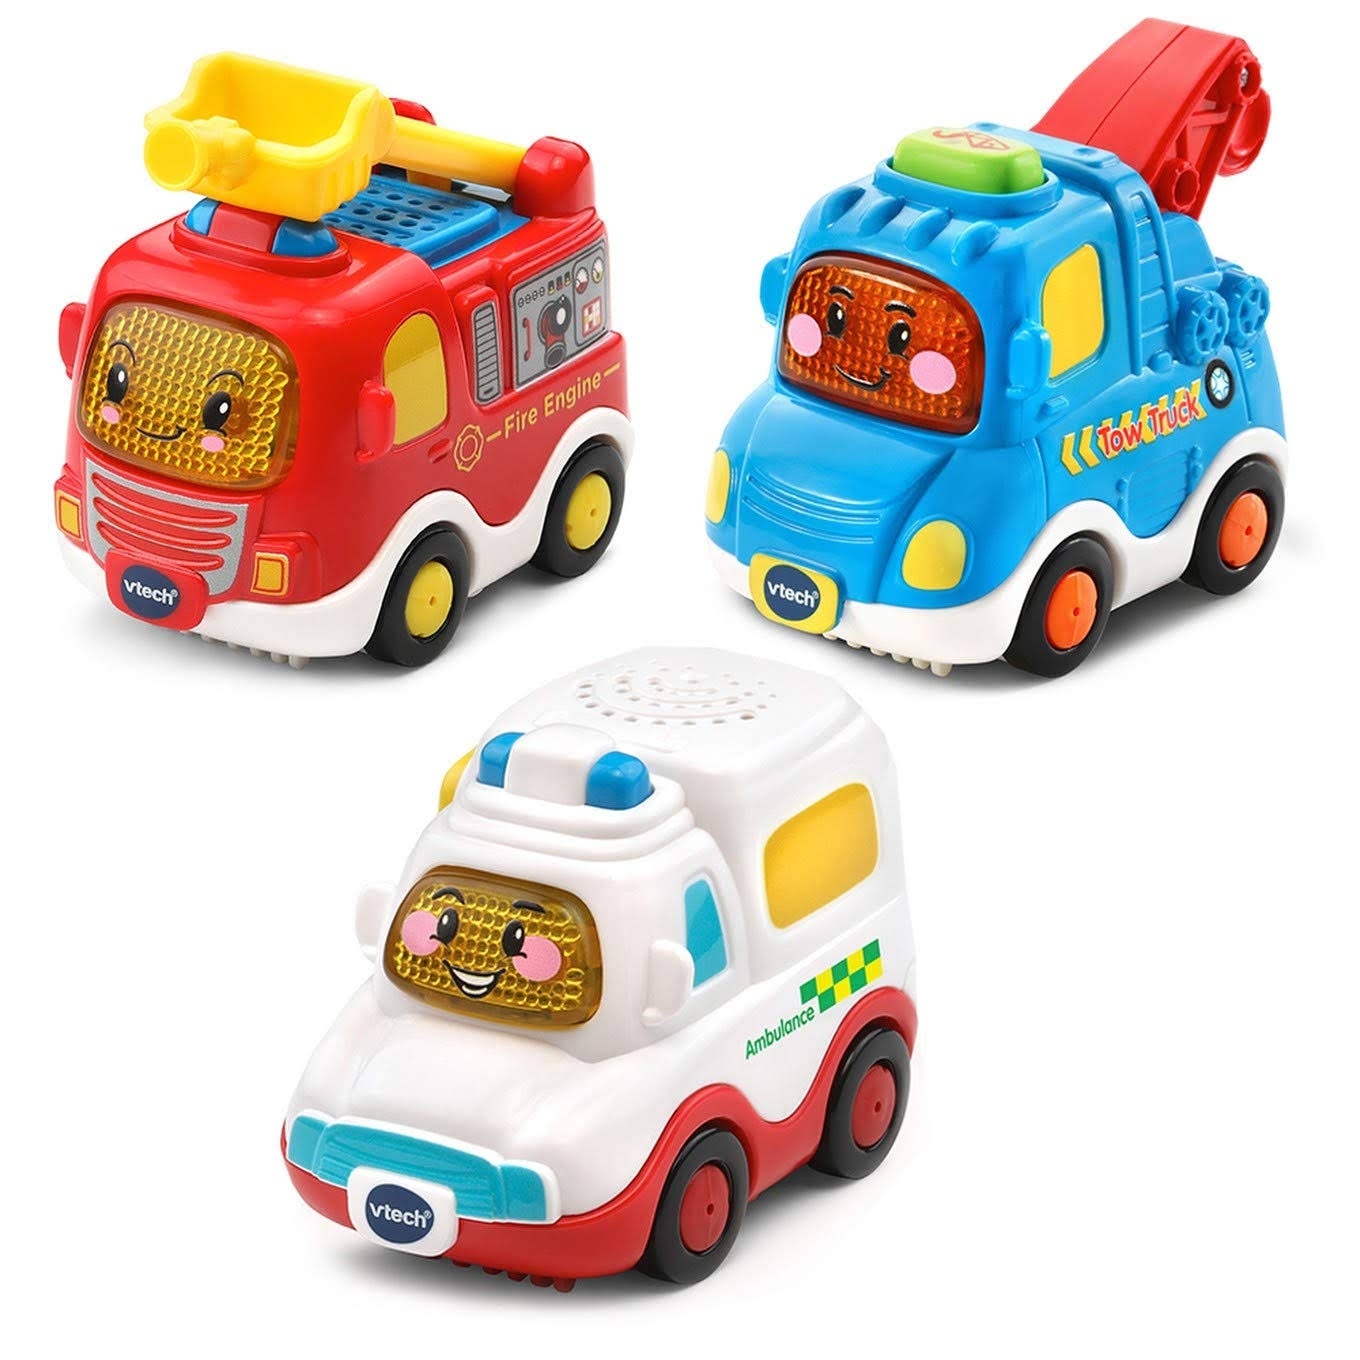 Vtech Toot-Toot Drivers 3 Car Pack - Emergency Vehicles